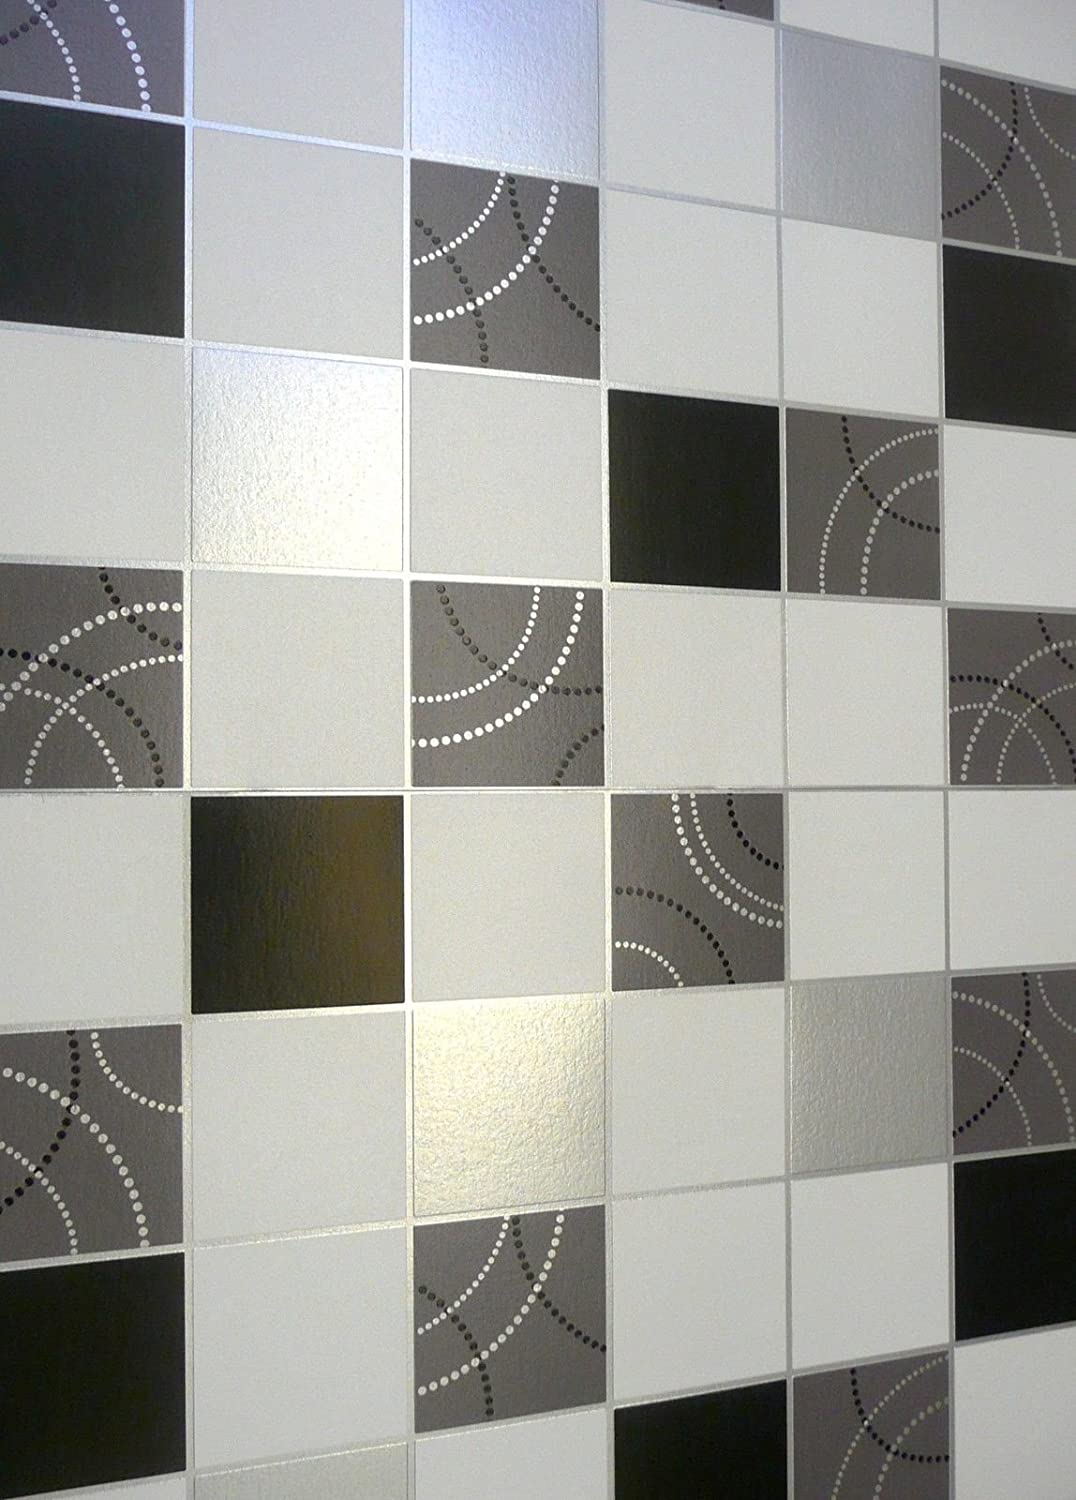 Debona Dotty Wallpaper Kitchen Bathroom Black Silver Tile Effect Washable:  Amazon.co.uk: Kitchen & Home